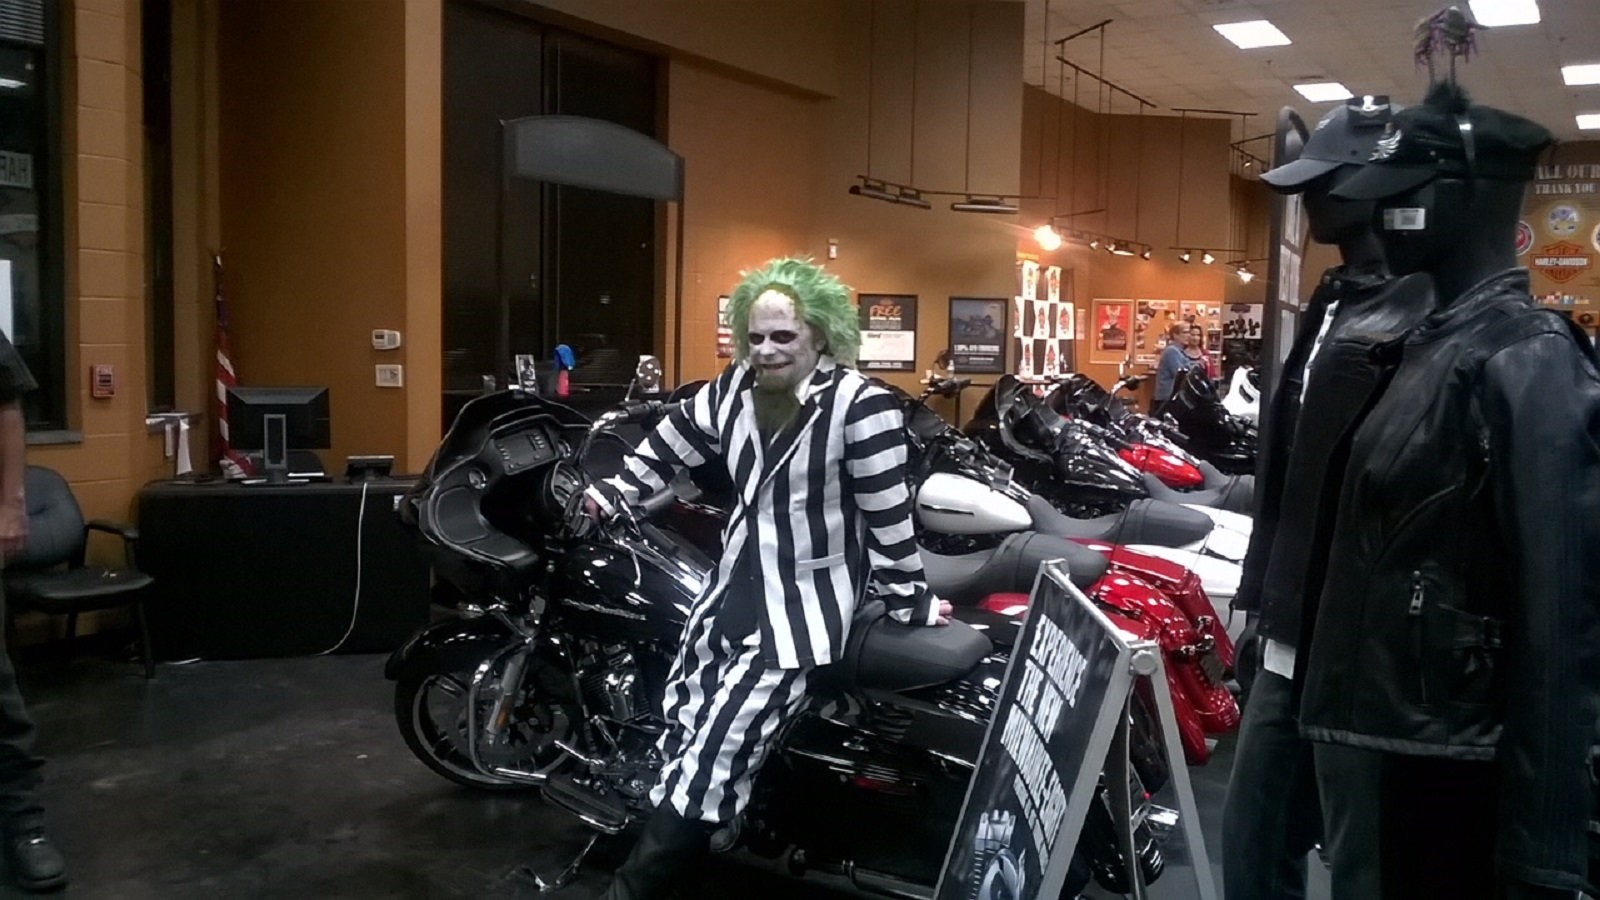 BEETLEJUICE on a Bagger!